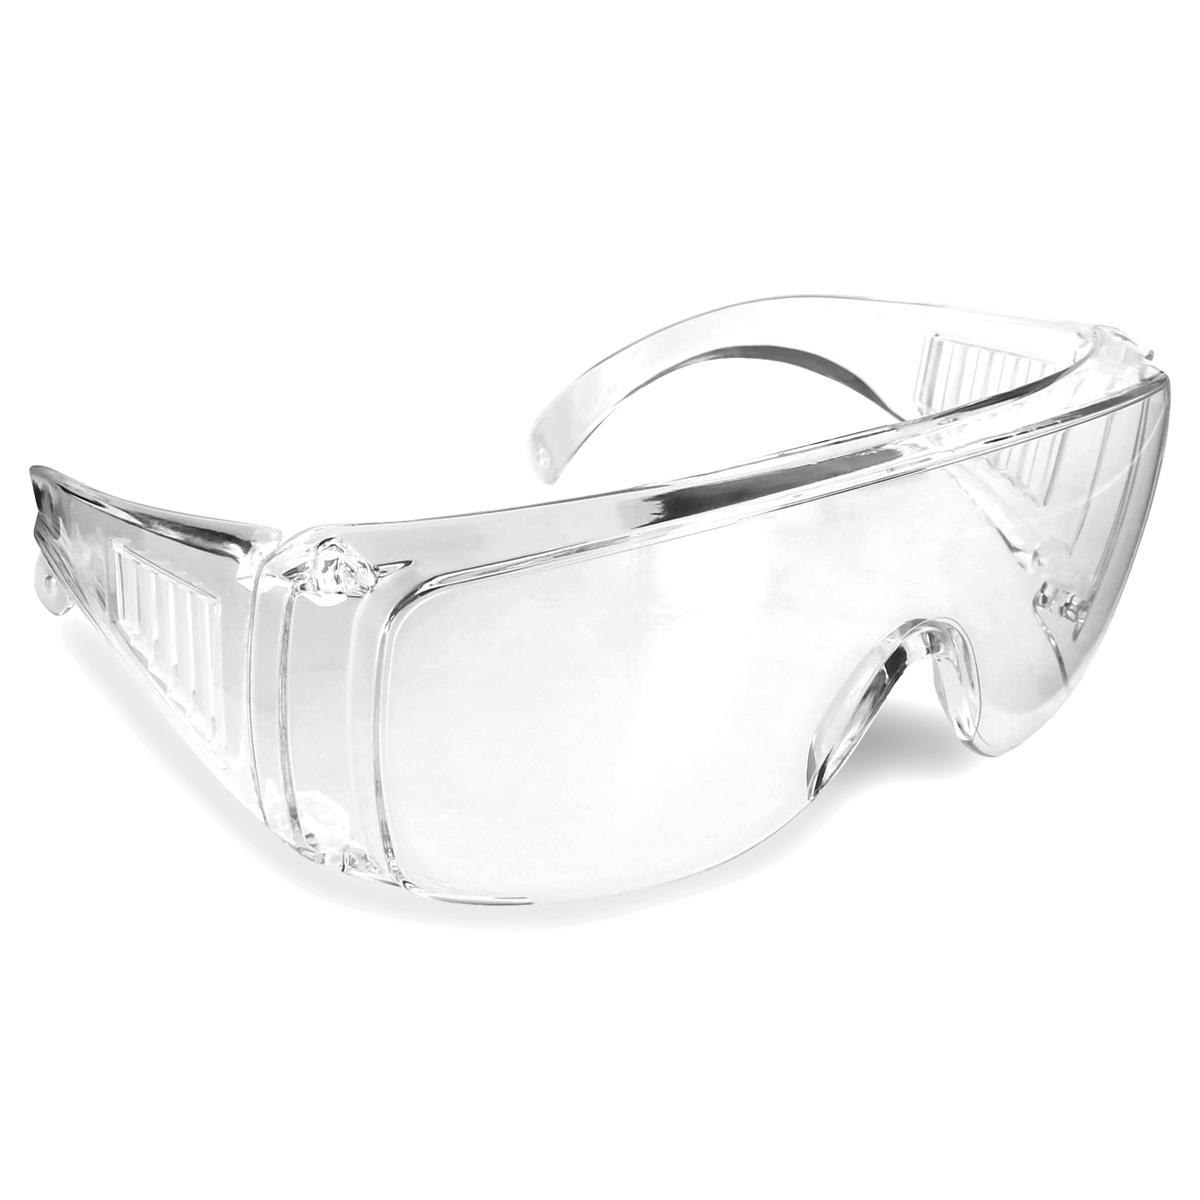 Rugged Blue Visitor Clear Safety Glasses (12) - - Amazon.com